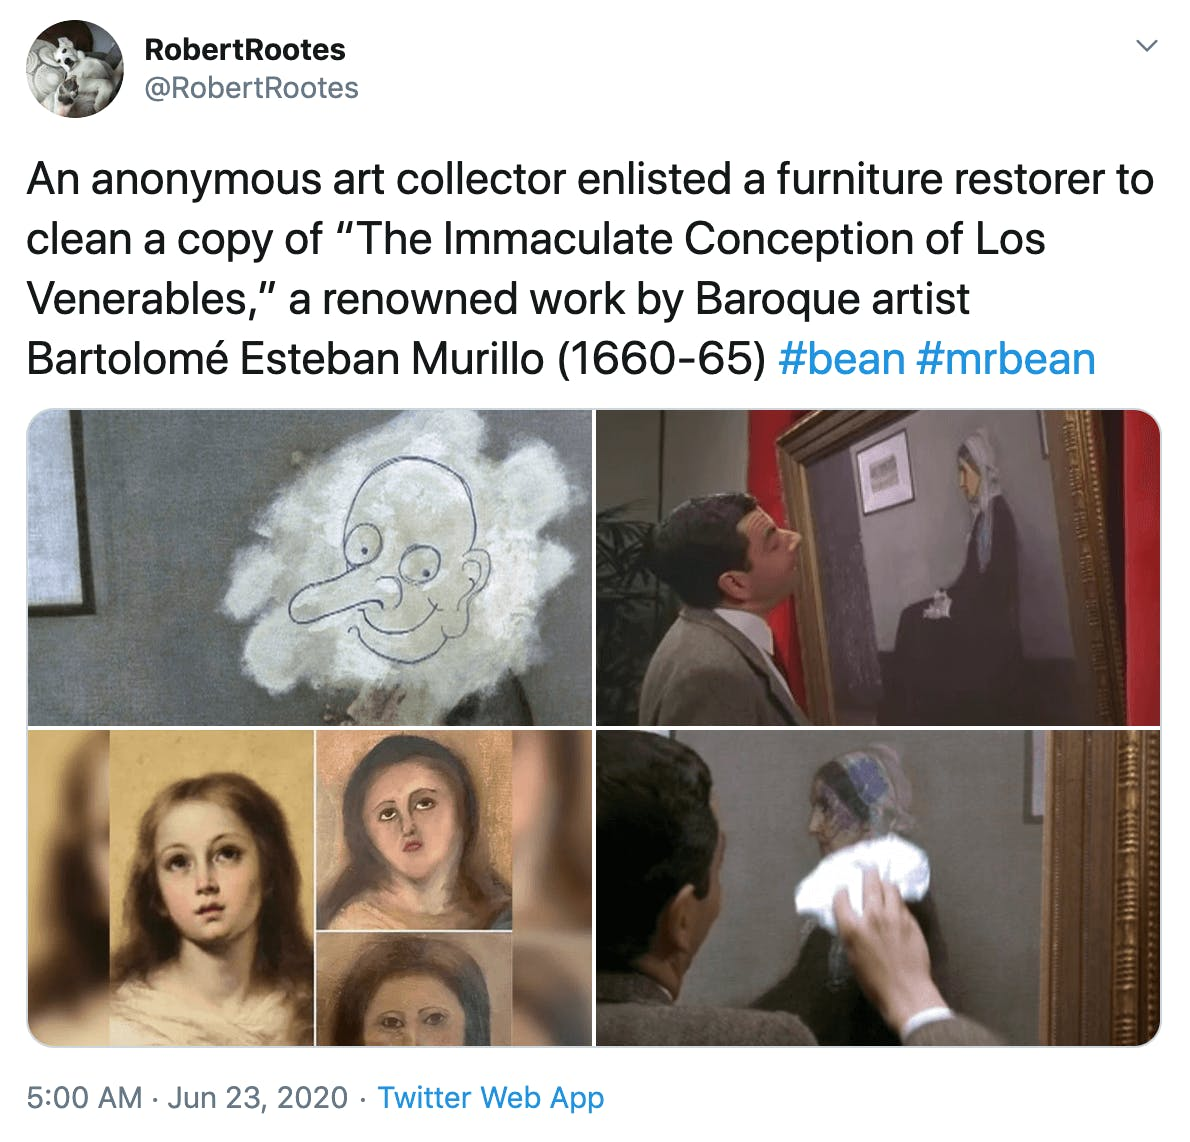 """An anonymous art collector enlisted a furniture restorer to clean a copy of ""The Immaculate Conception of Los Venerables,"" a renowned work by Baroque artist Bartolomé Esteban Murillo (1660-65) #bean #mrbean"" Images of the original and the botched repair next to images from the Mr. Bean movie where Mr. Bean did the same thing"